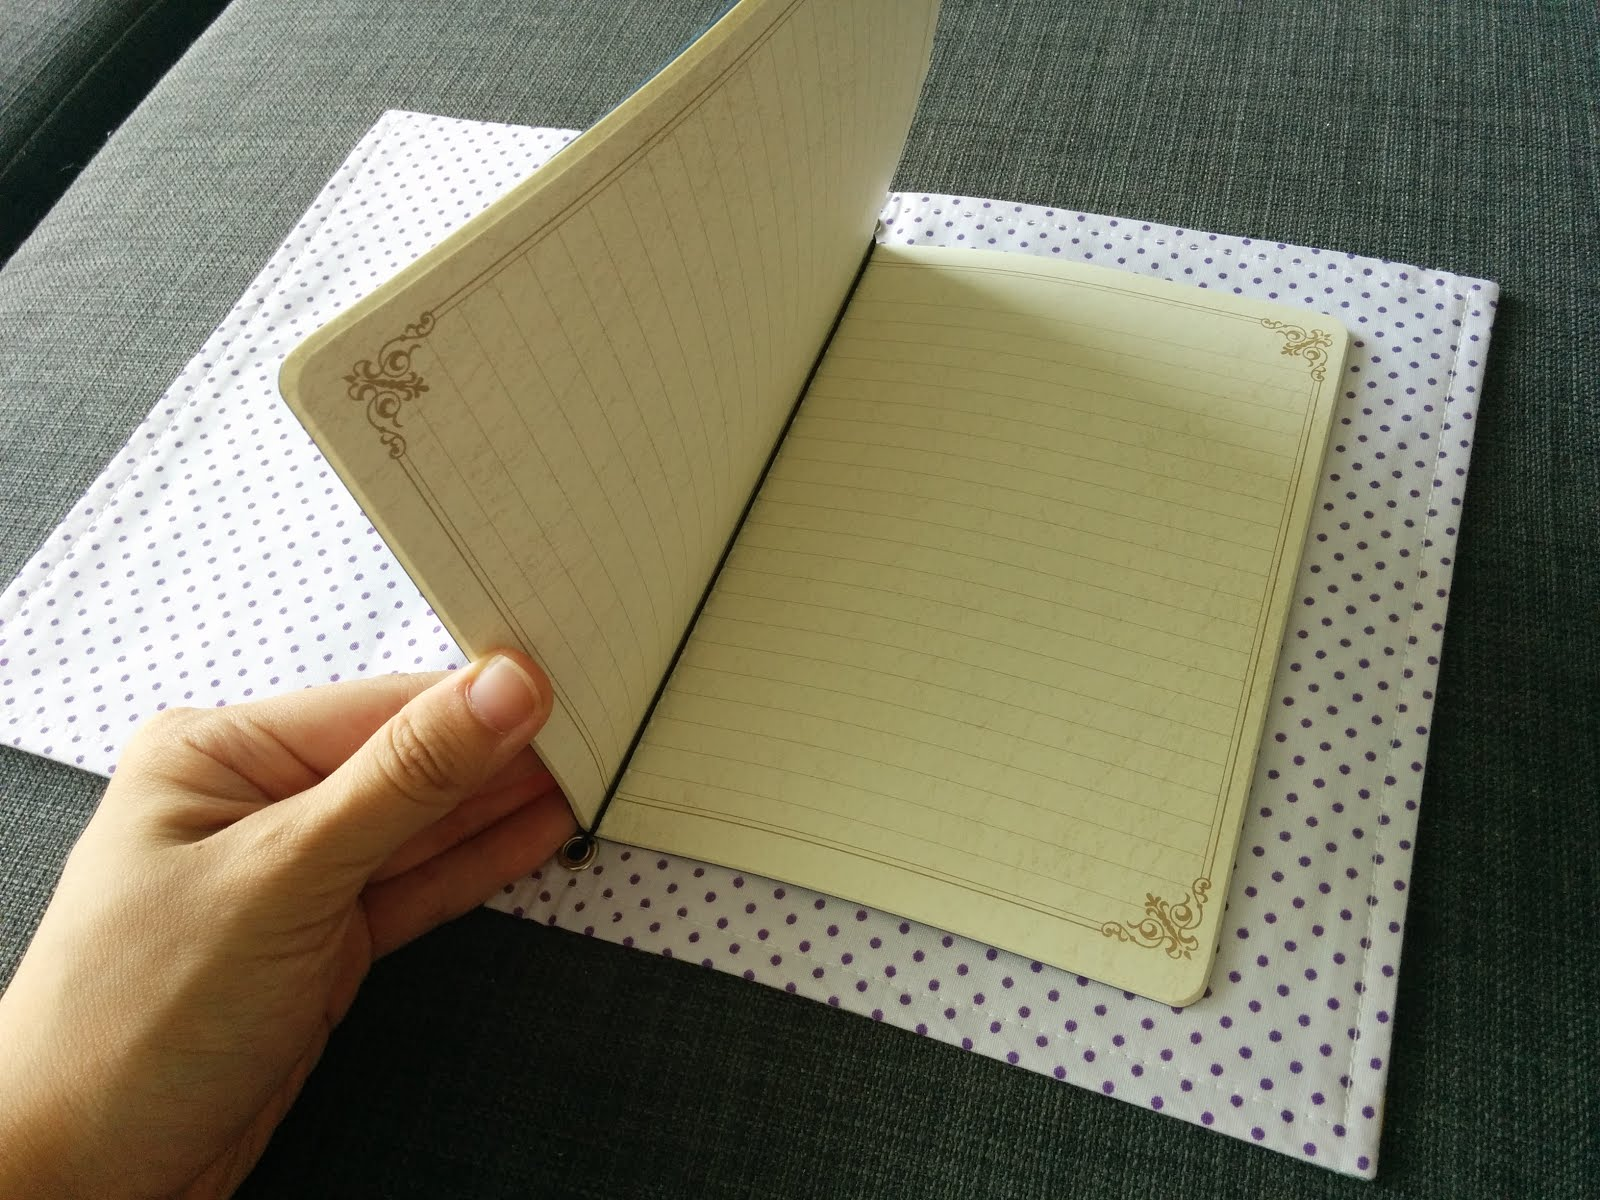 DIY Traveller's Notebook Midori / Fauxdori Journal Cover